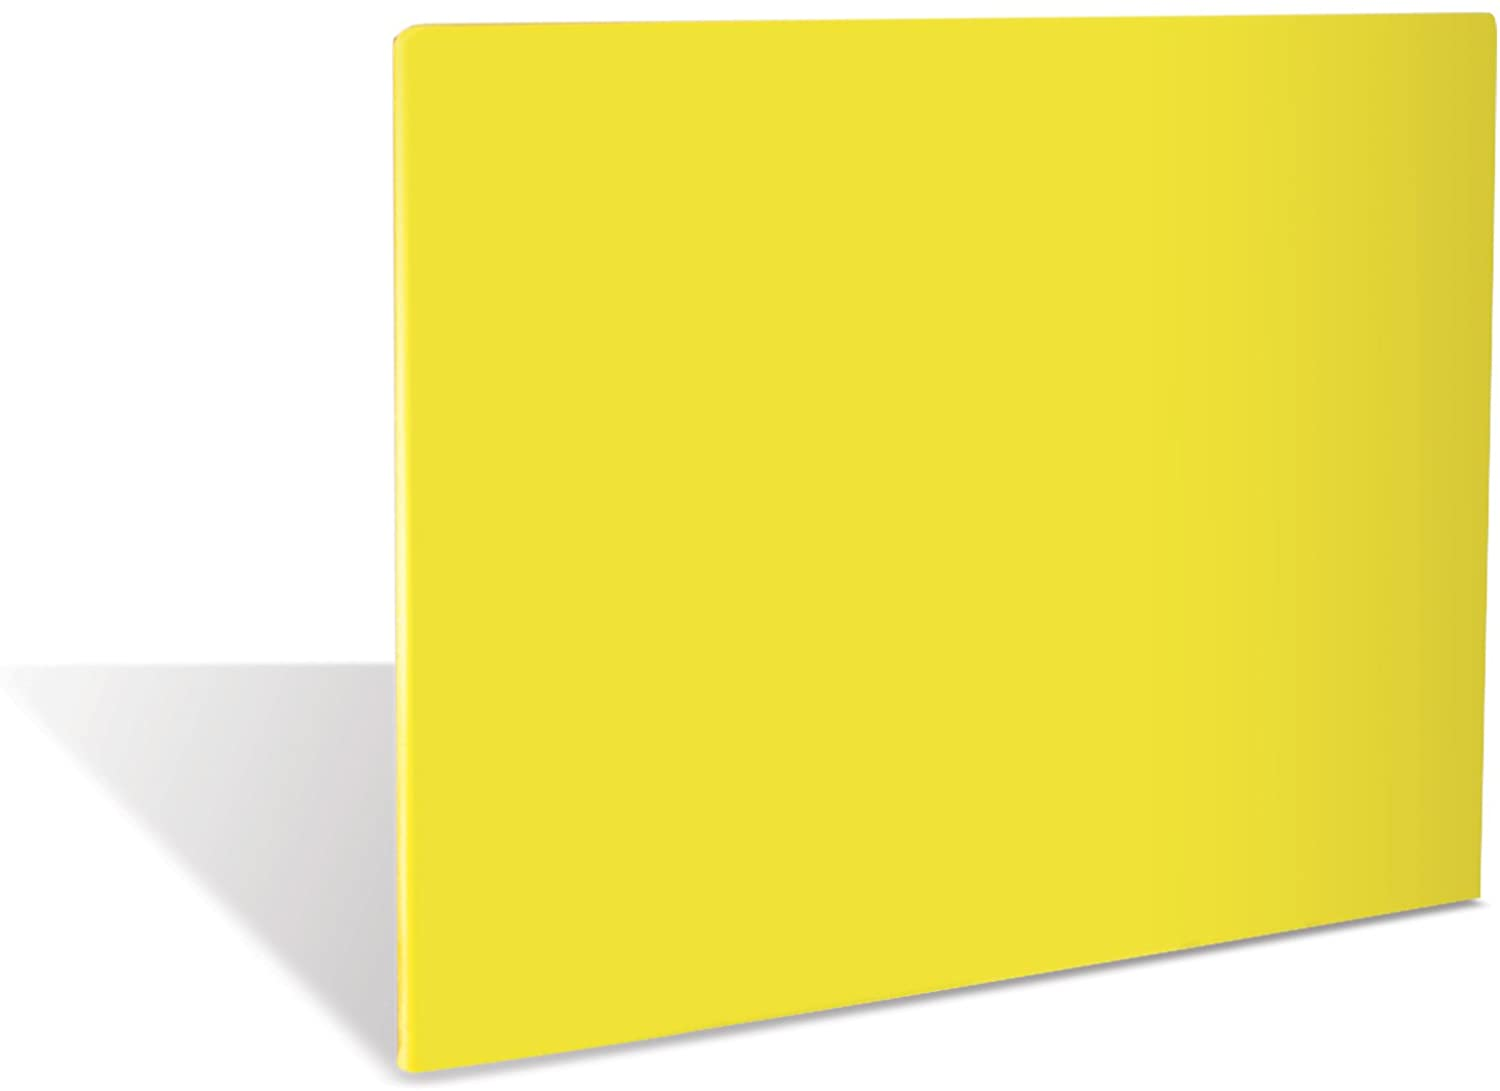 Crestware 15 by 20-Inch Polyethylene Cutting Board in Yellow